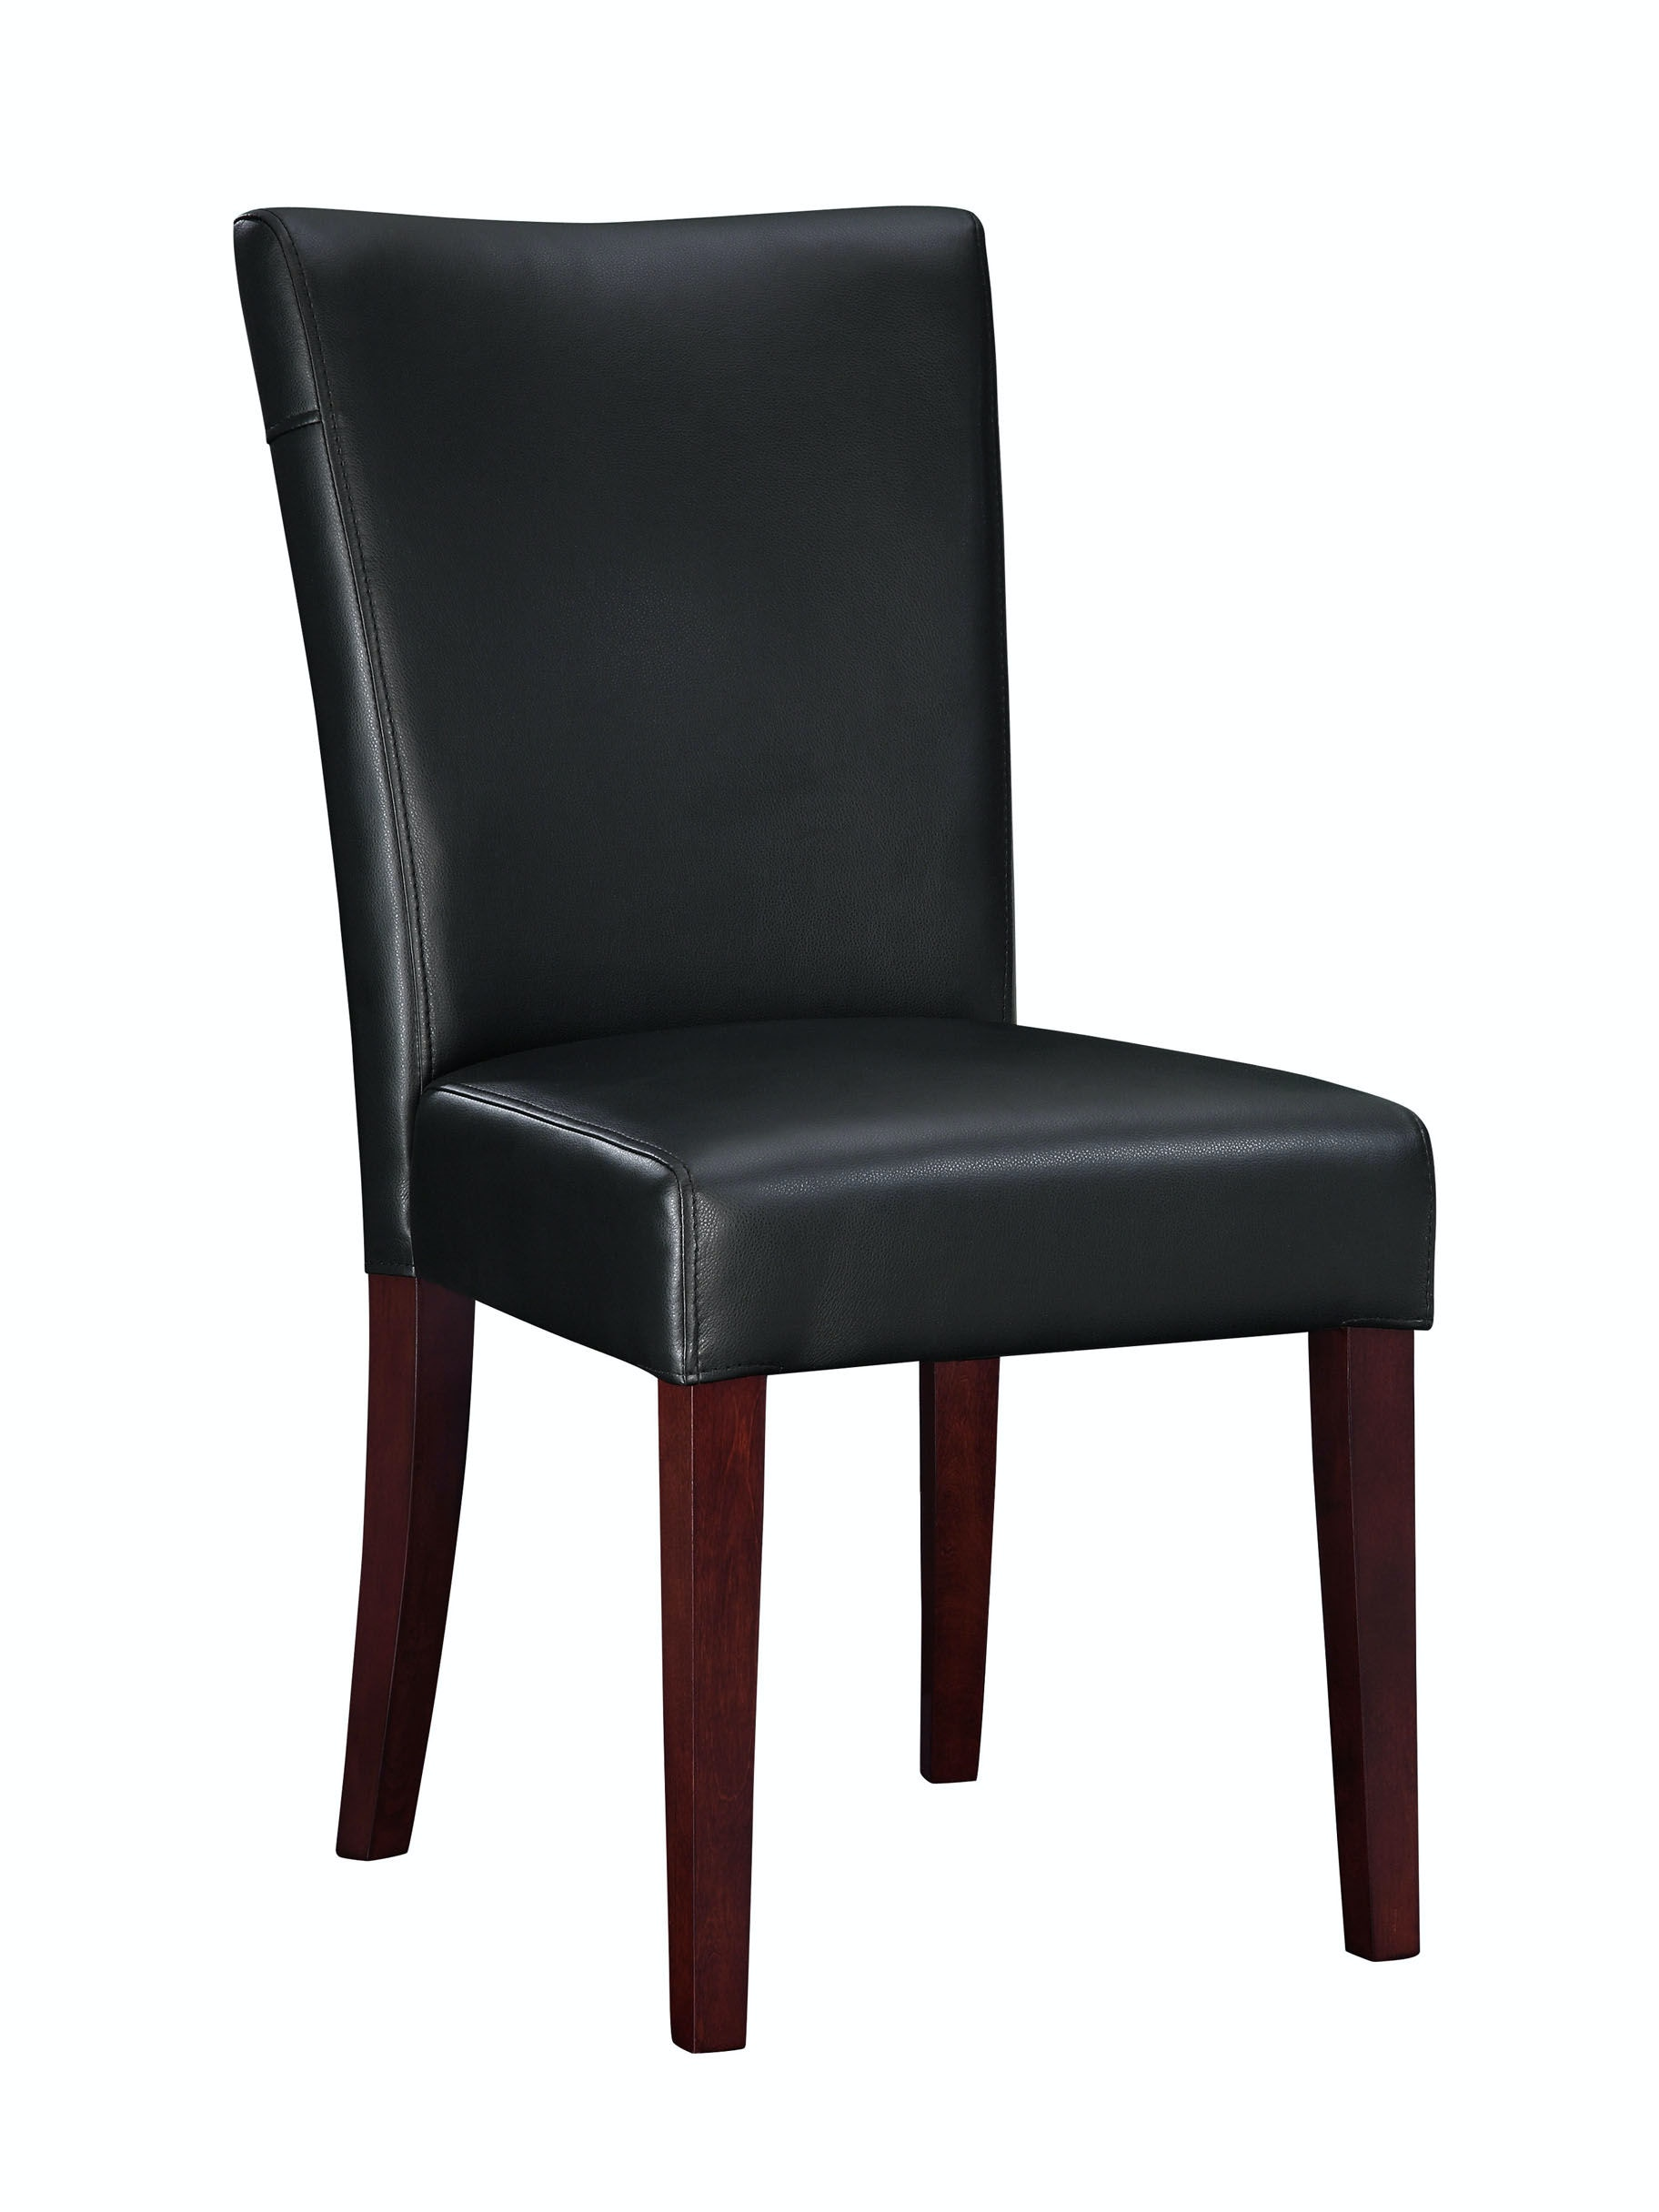 black parsons chair wheel cushion powell furniture dining room bonded leather 20 1 2 inch seat height 273 833 at butterworths of petersburg